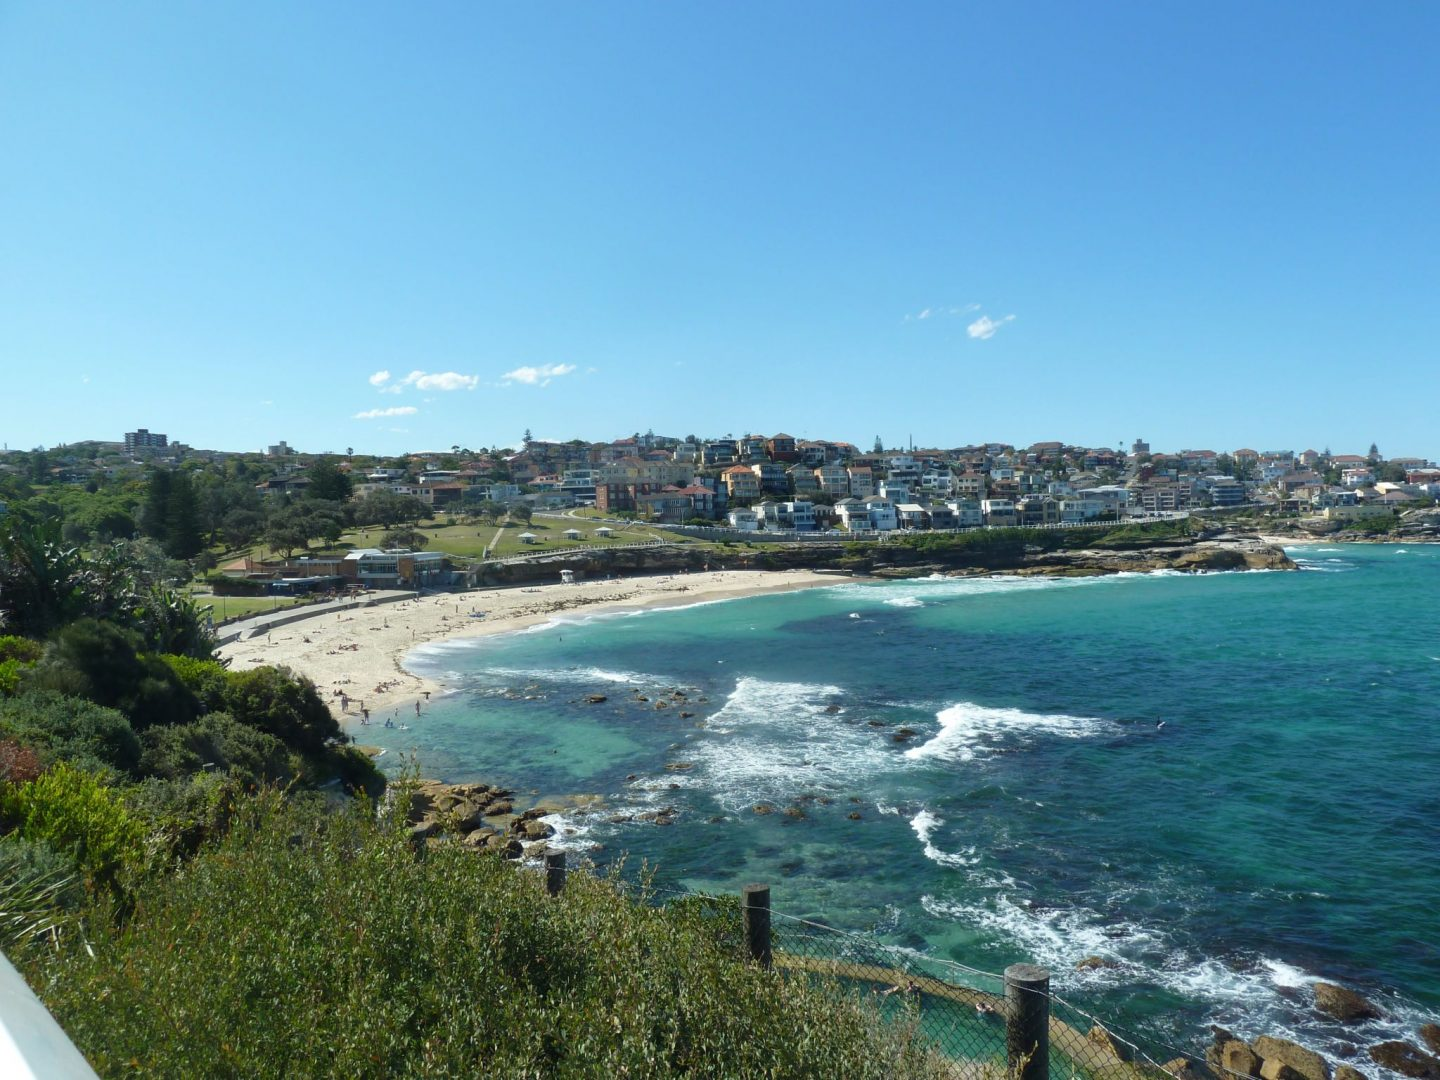 View from the headland looking back over Bronte Beach